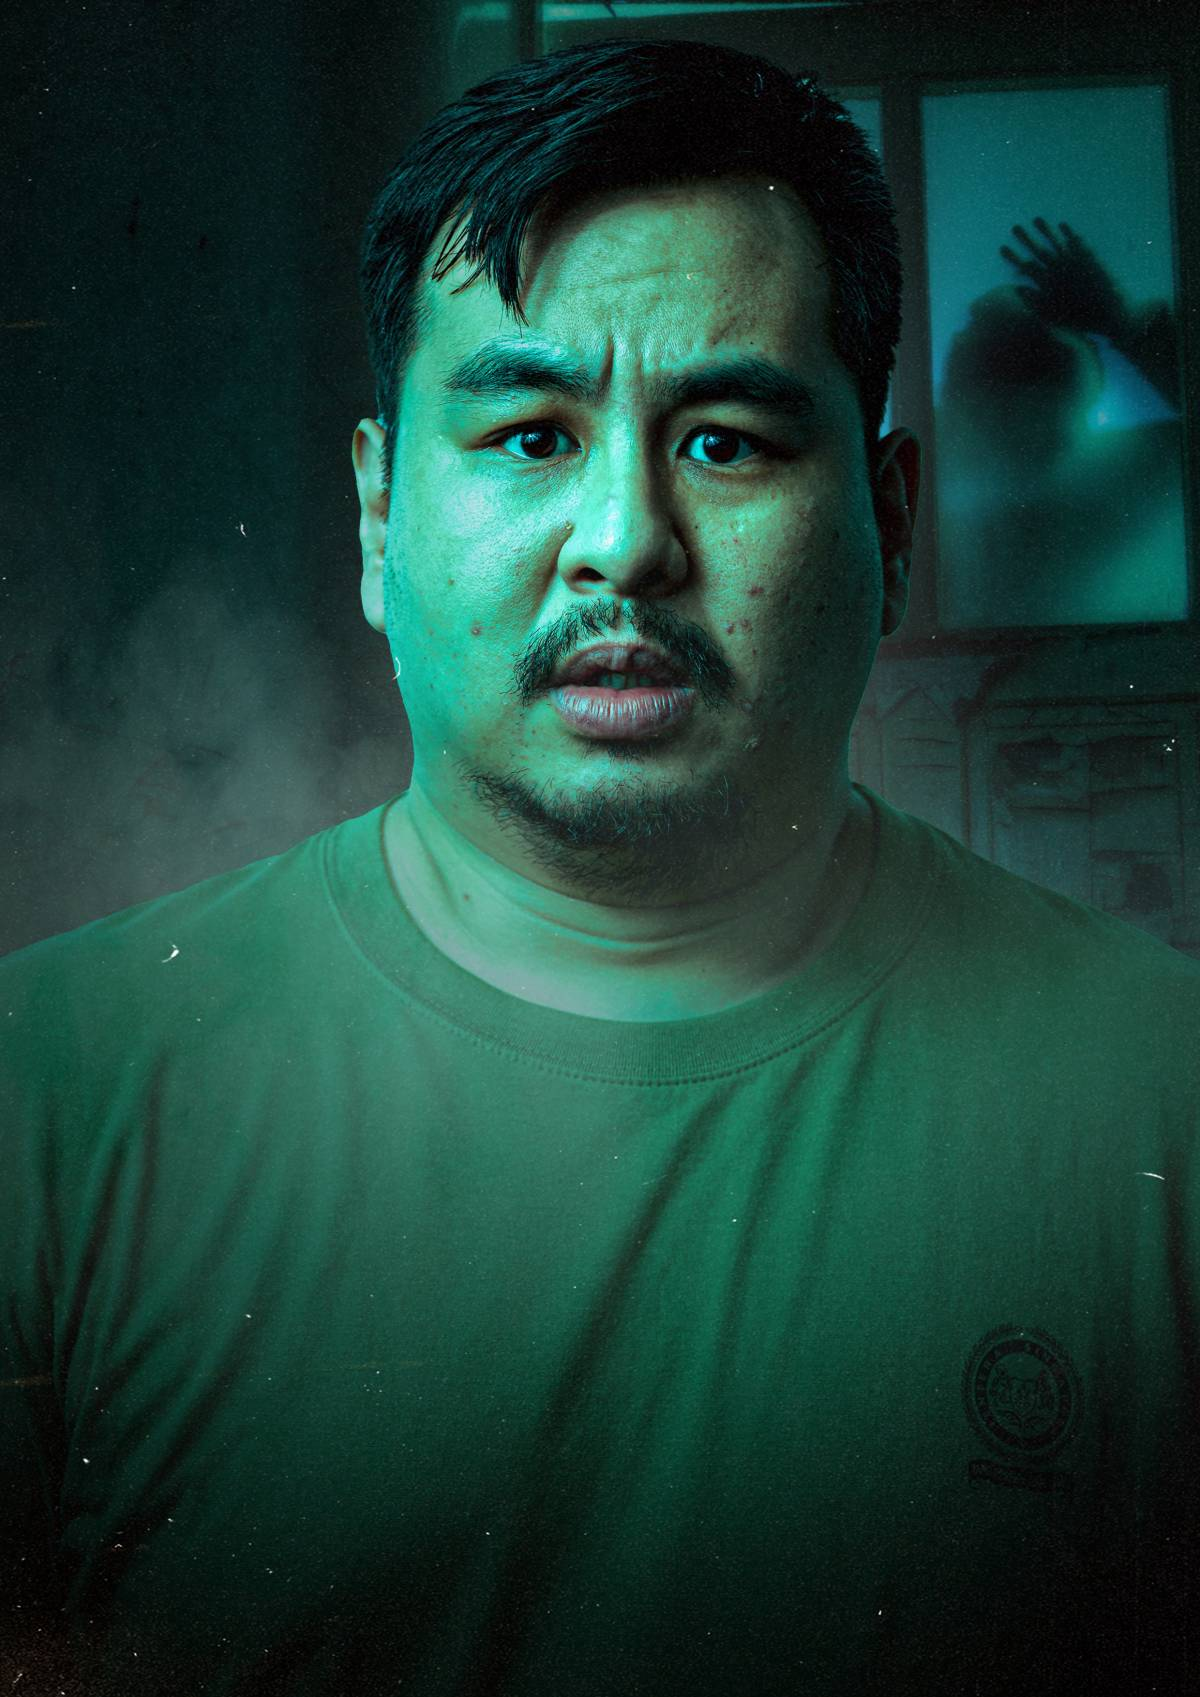 Murder at Old Changi Hospital: The Haunting Starts This Halloween Season from 8 October 2021